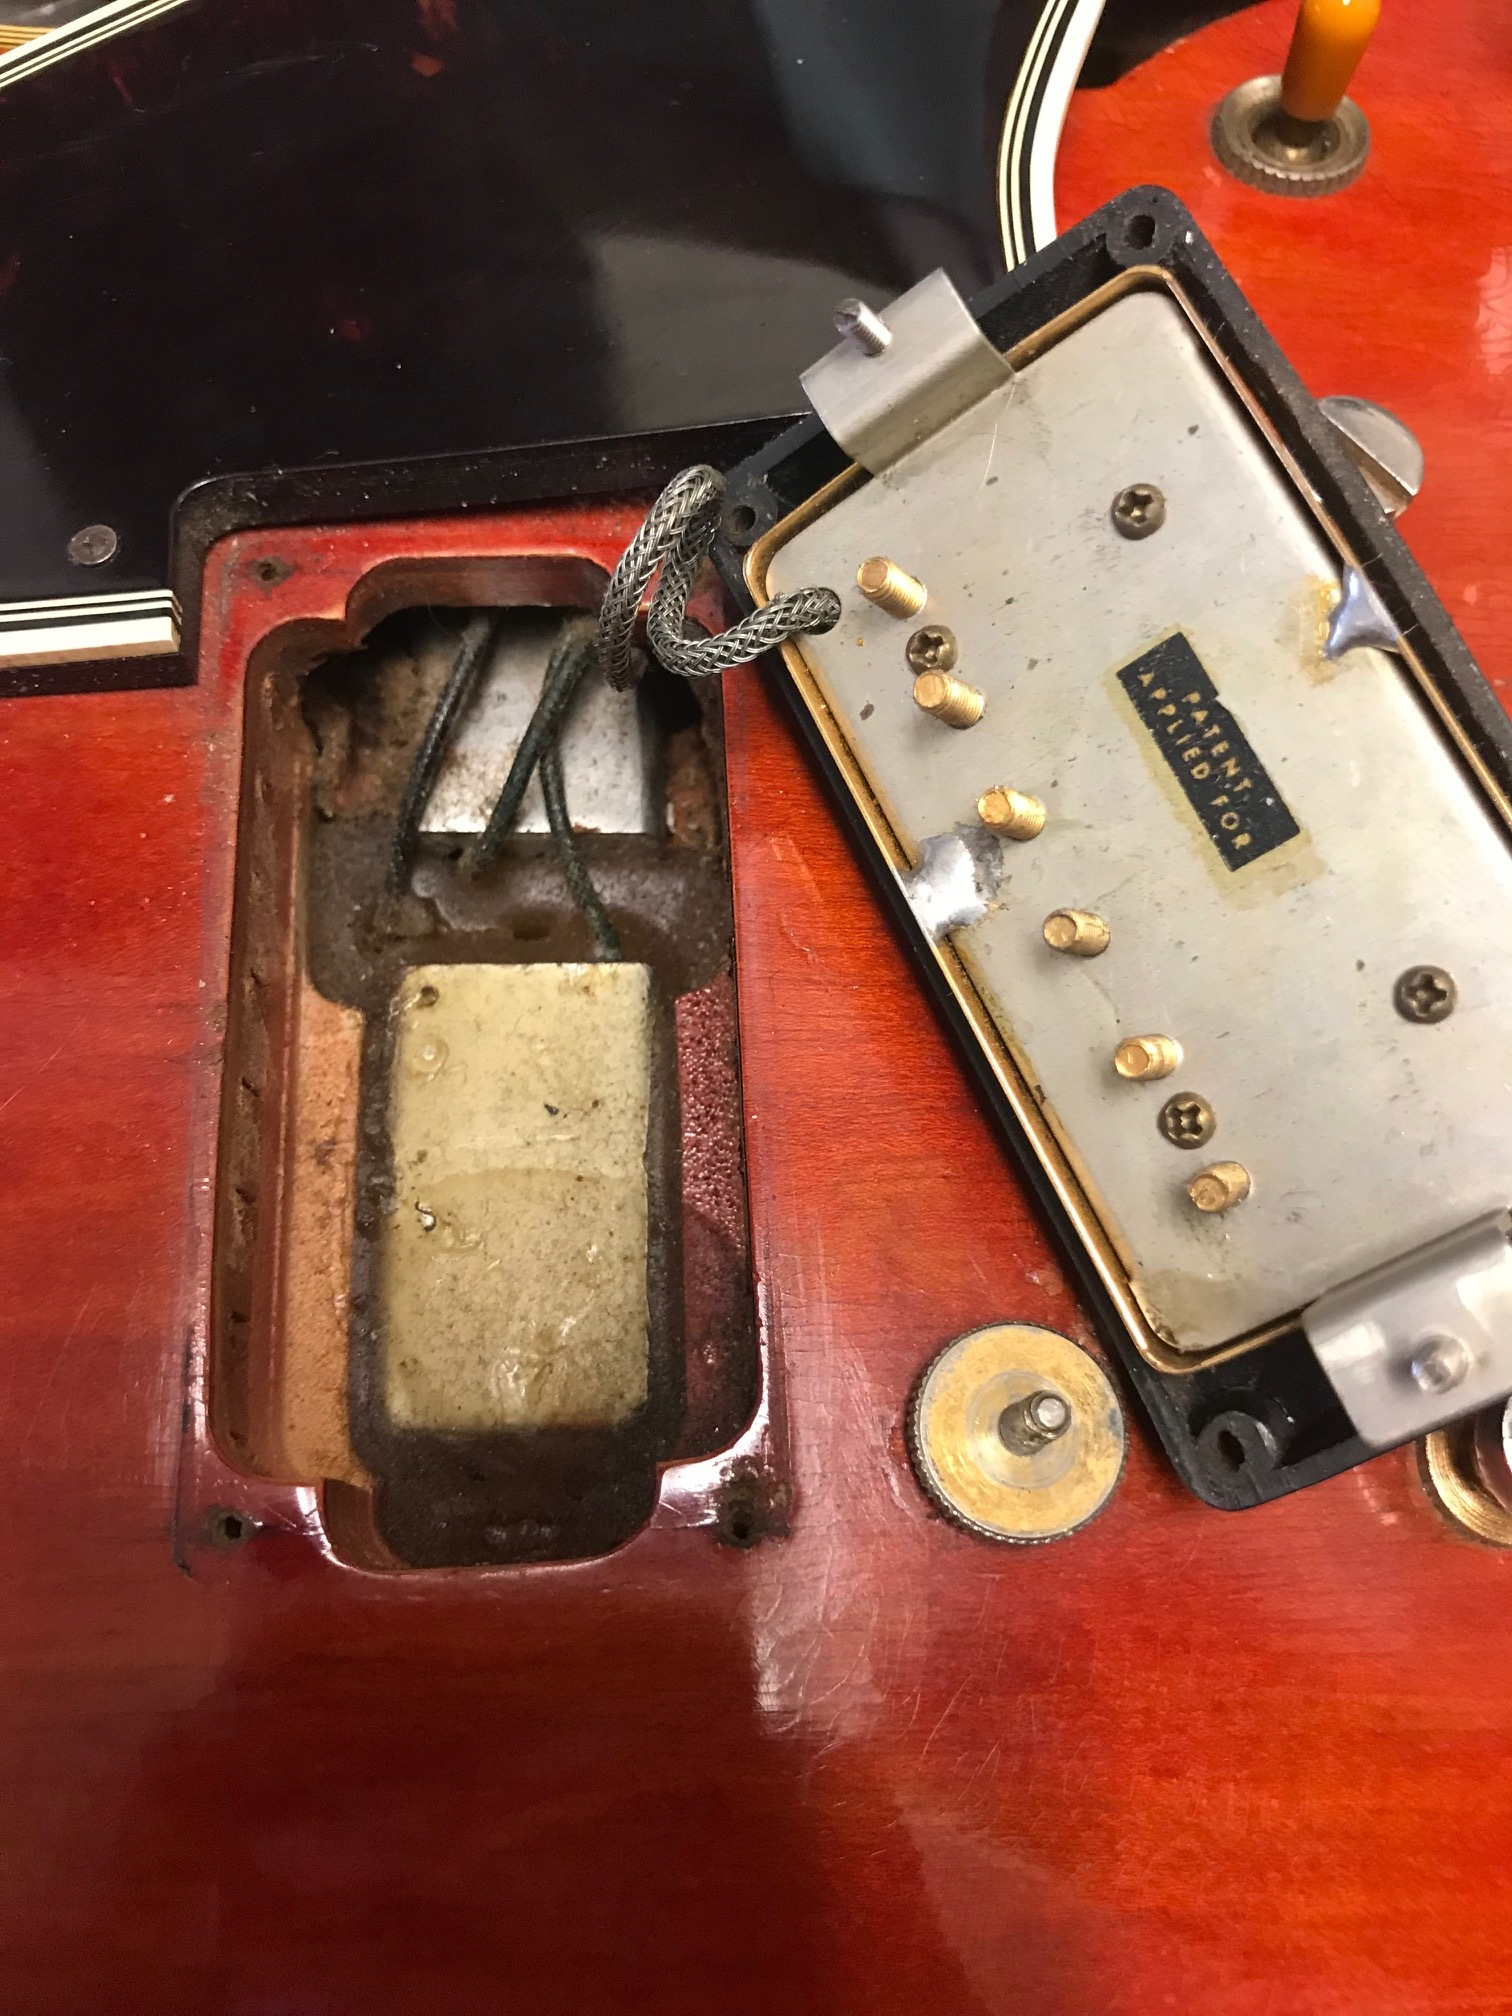 The Gibson Es 335 Wiring Diagram Pdf Like A First Rack 345 This 355 Has Choke Right Under Pickup Which Requires Short Leg Paf For Clearance On Side